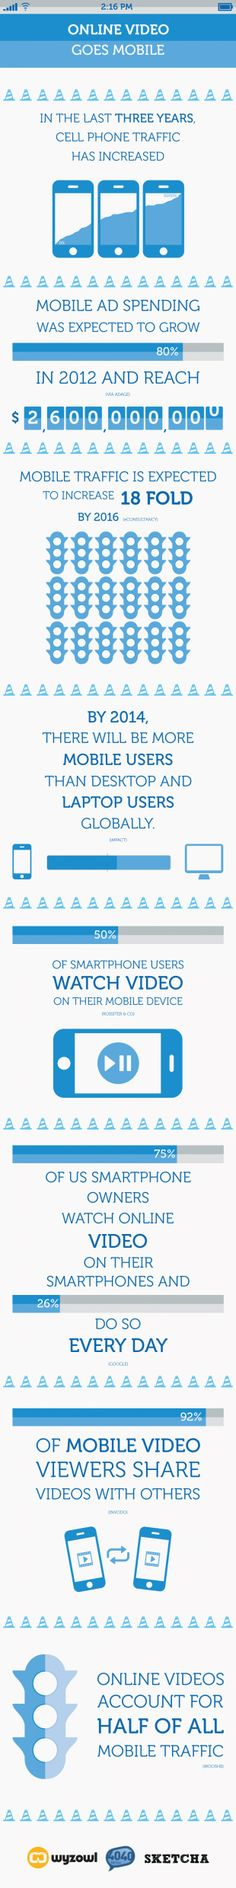 Watching Videos Goes Mobile: Infographic